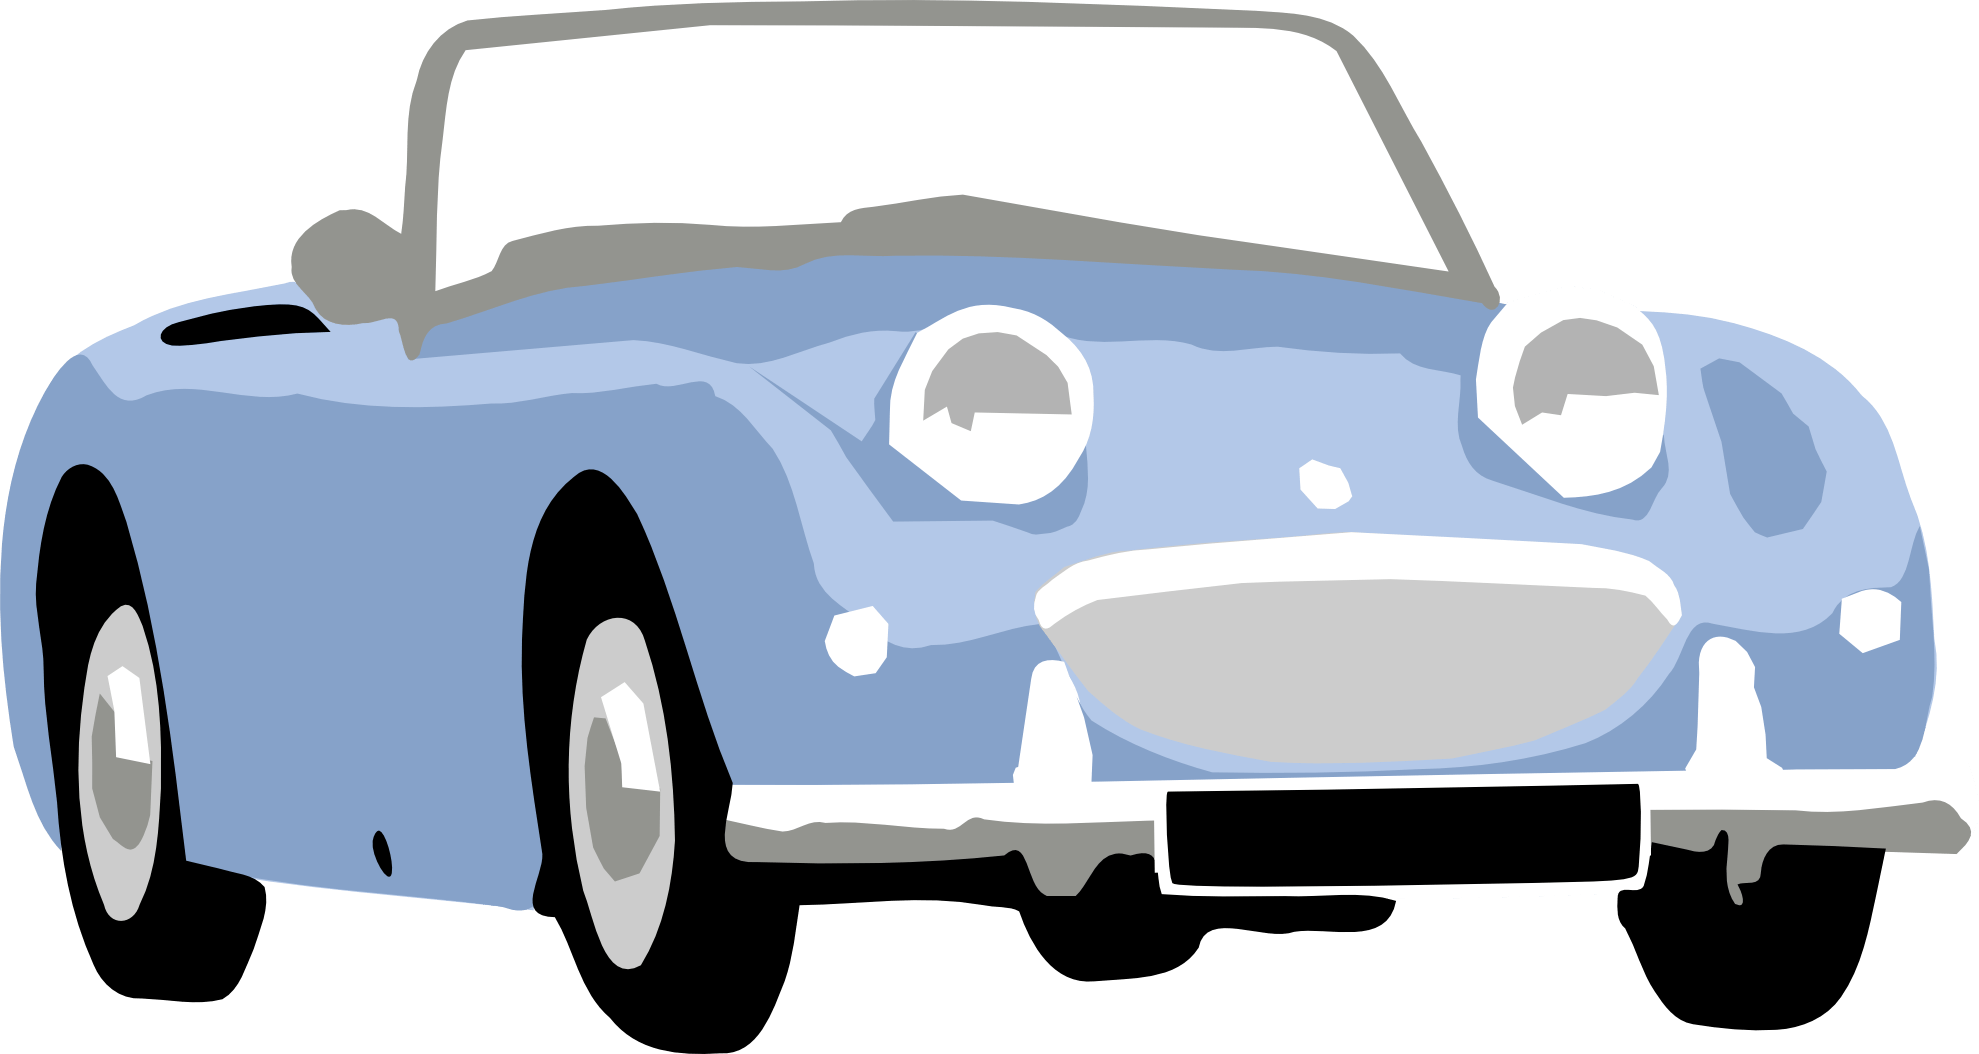 Driving clipart infront. Classic muscle car at